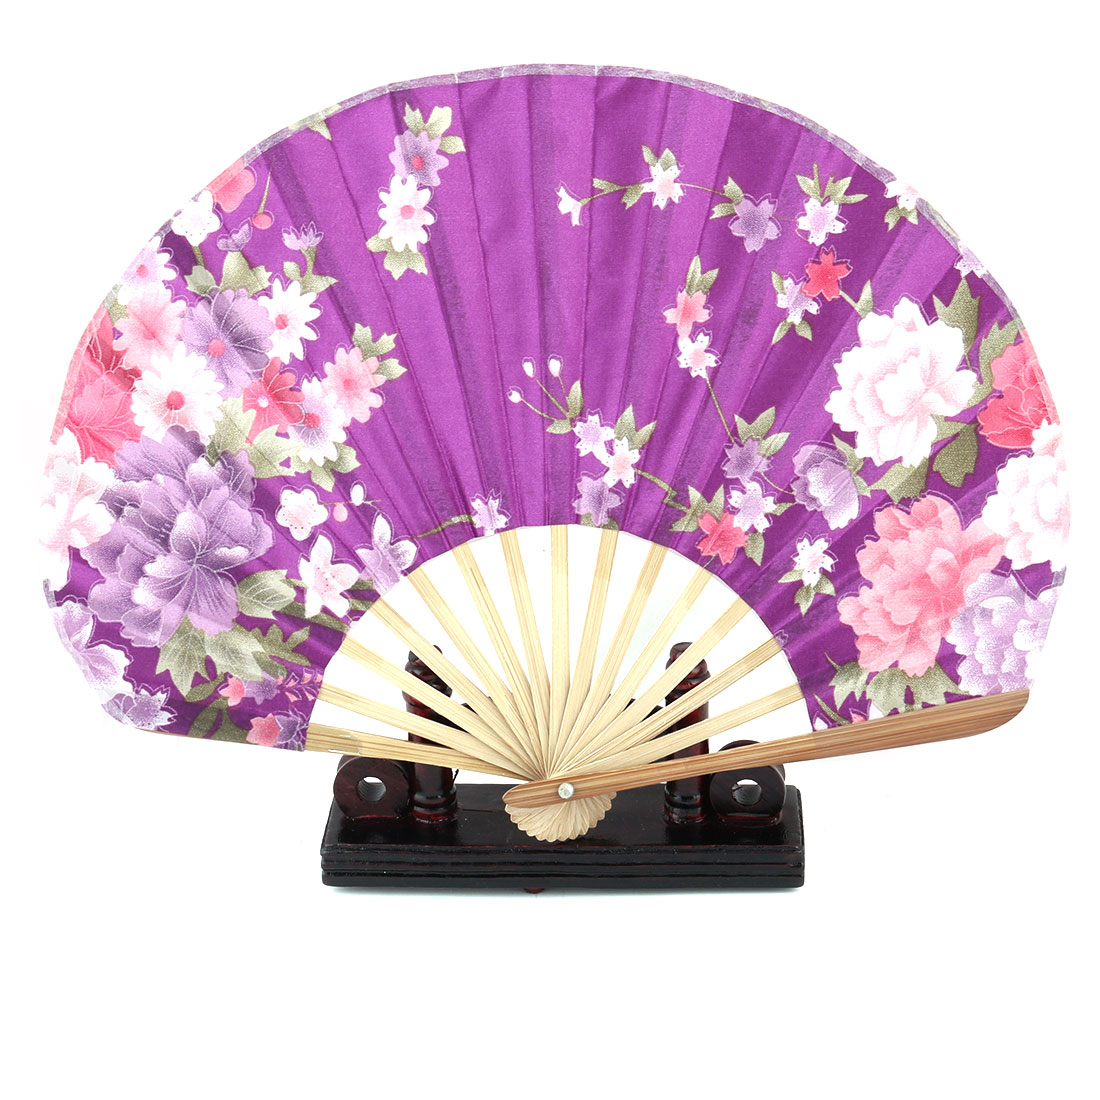 Home Bamboo Flower Pattern Chinese Style Folding Hand Fan Display Purple 2 in 1